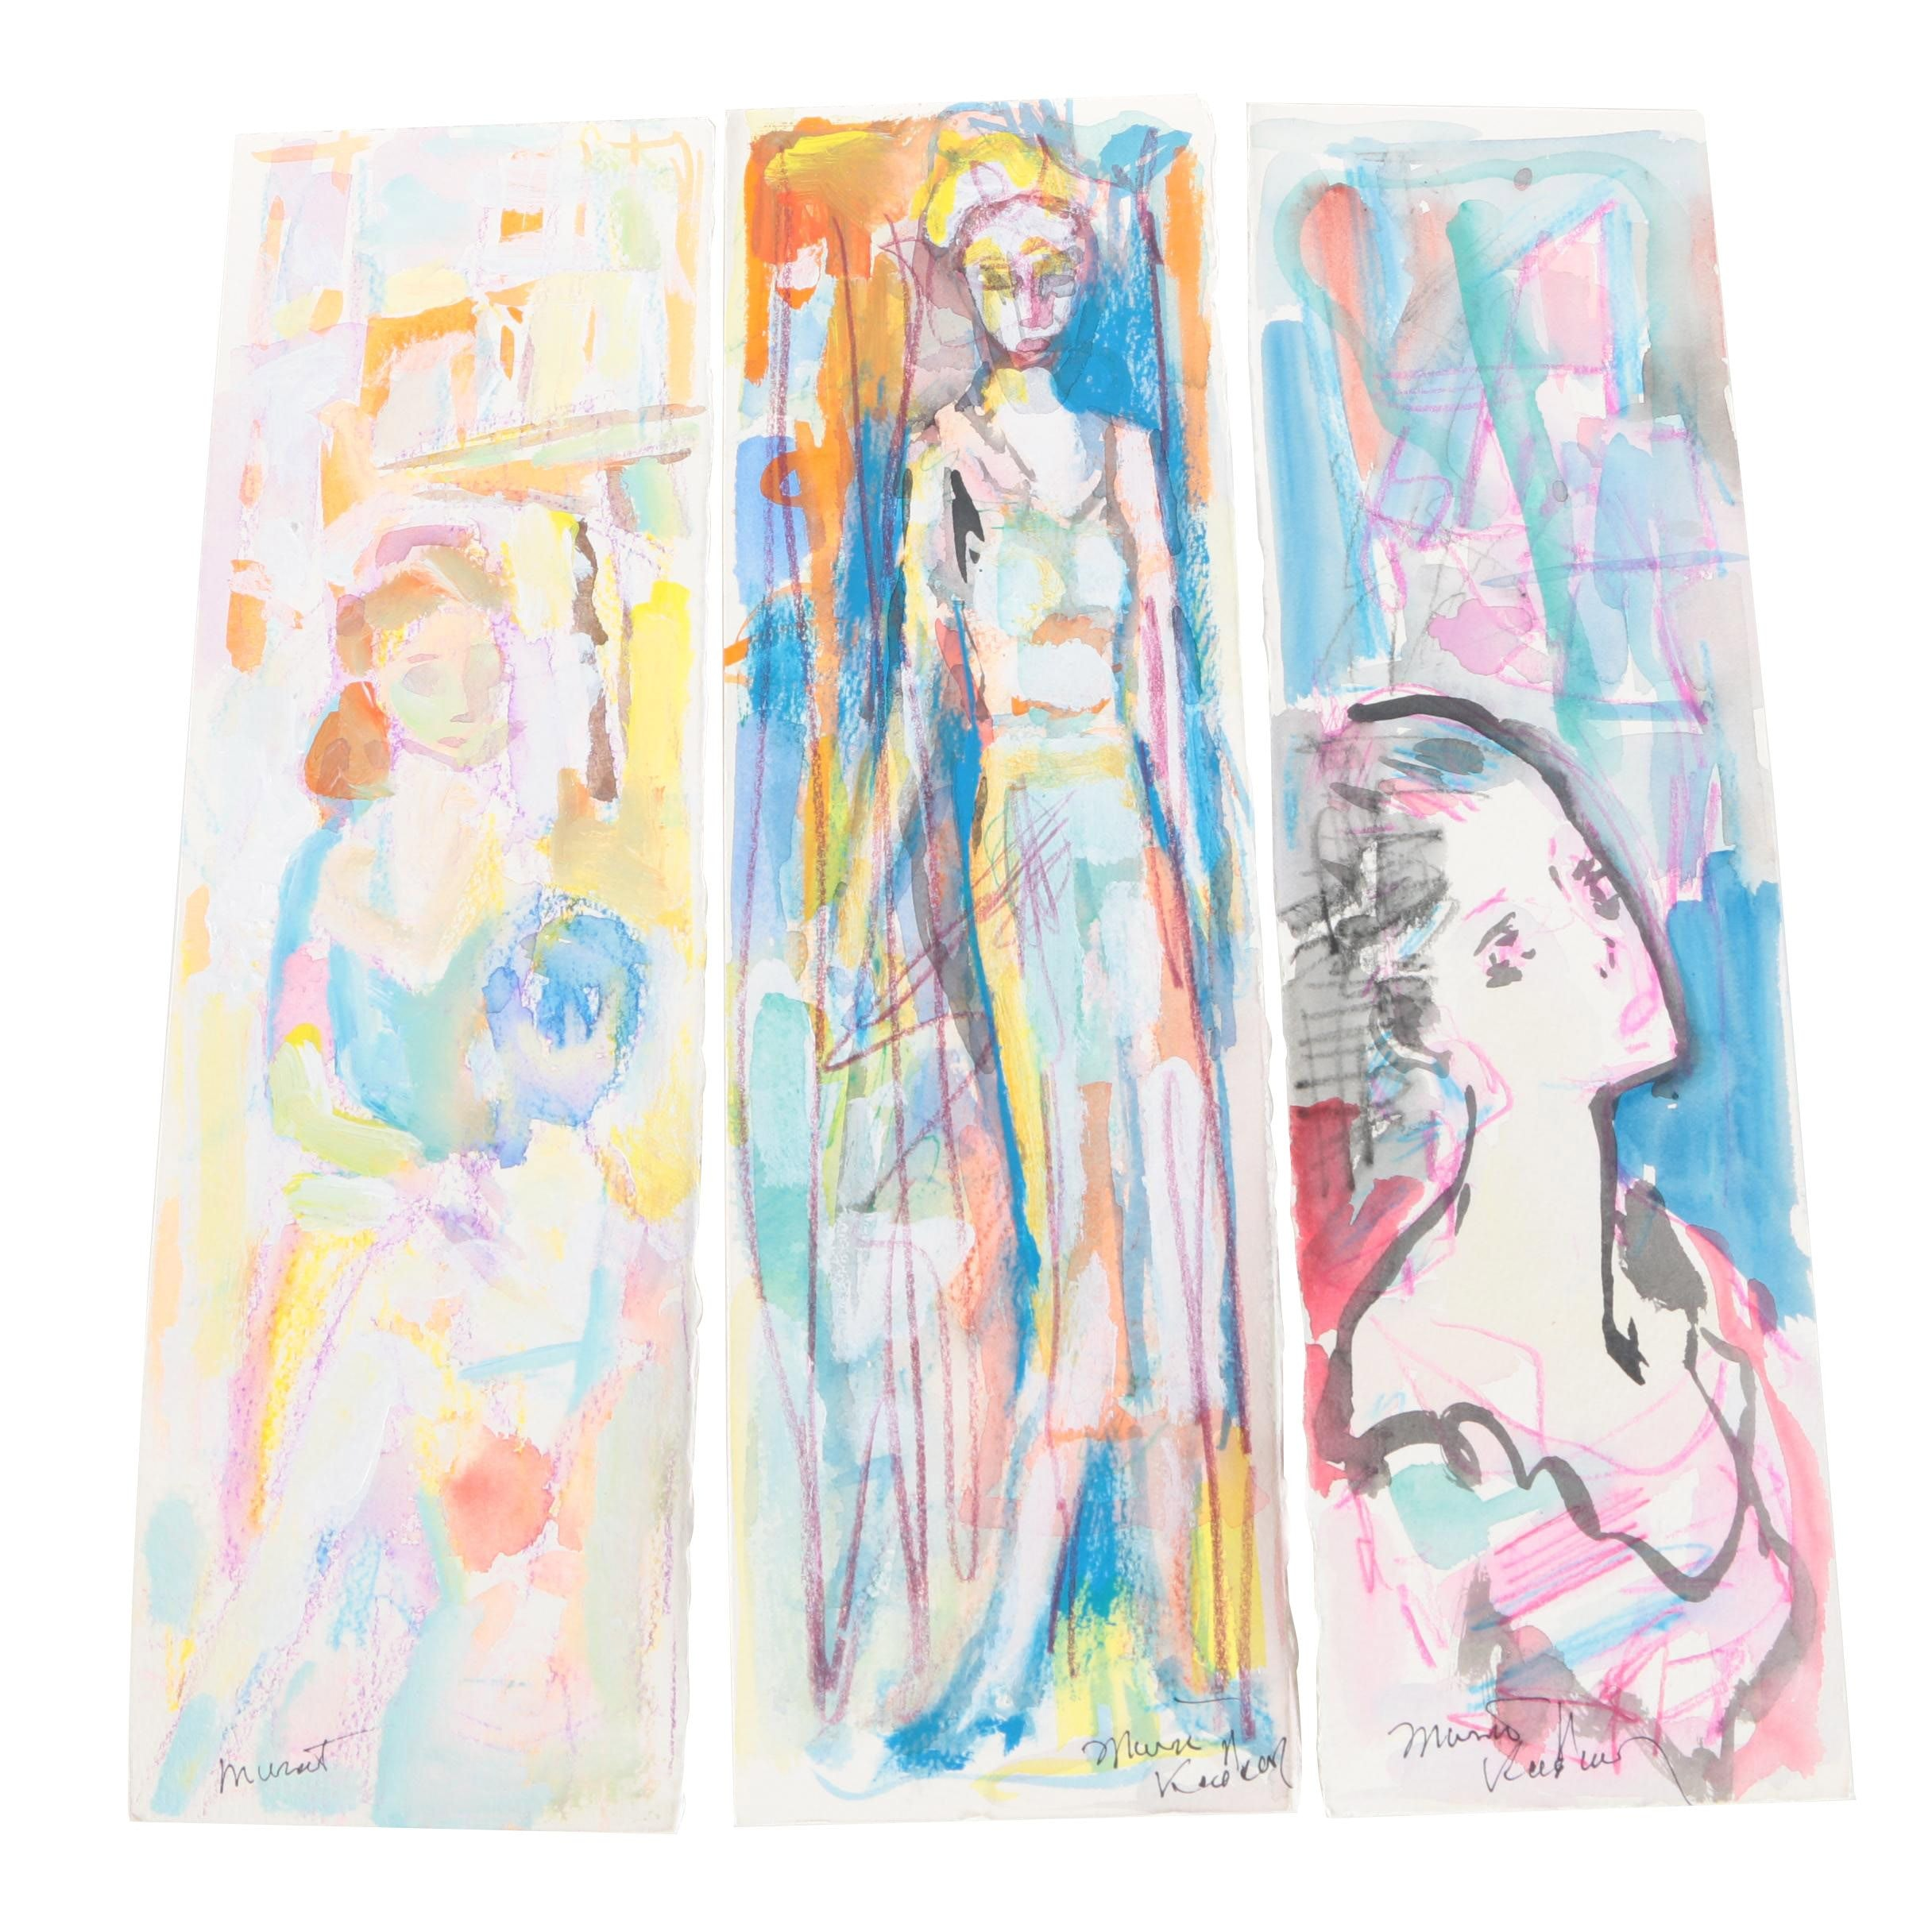 Murat Kaboulov Watercolor, Crayon and Acrylic Paintings of Women